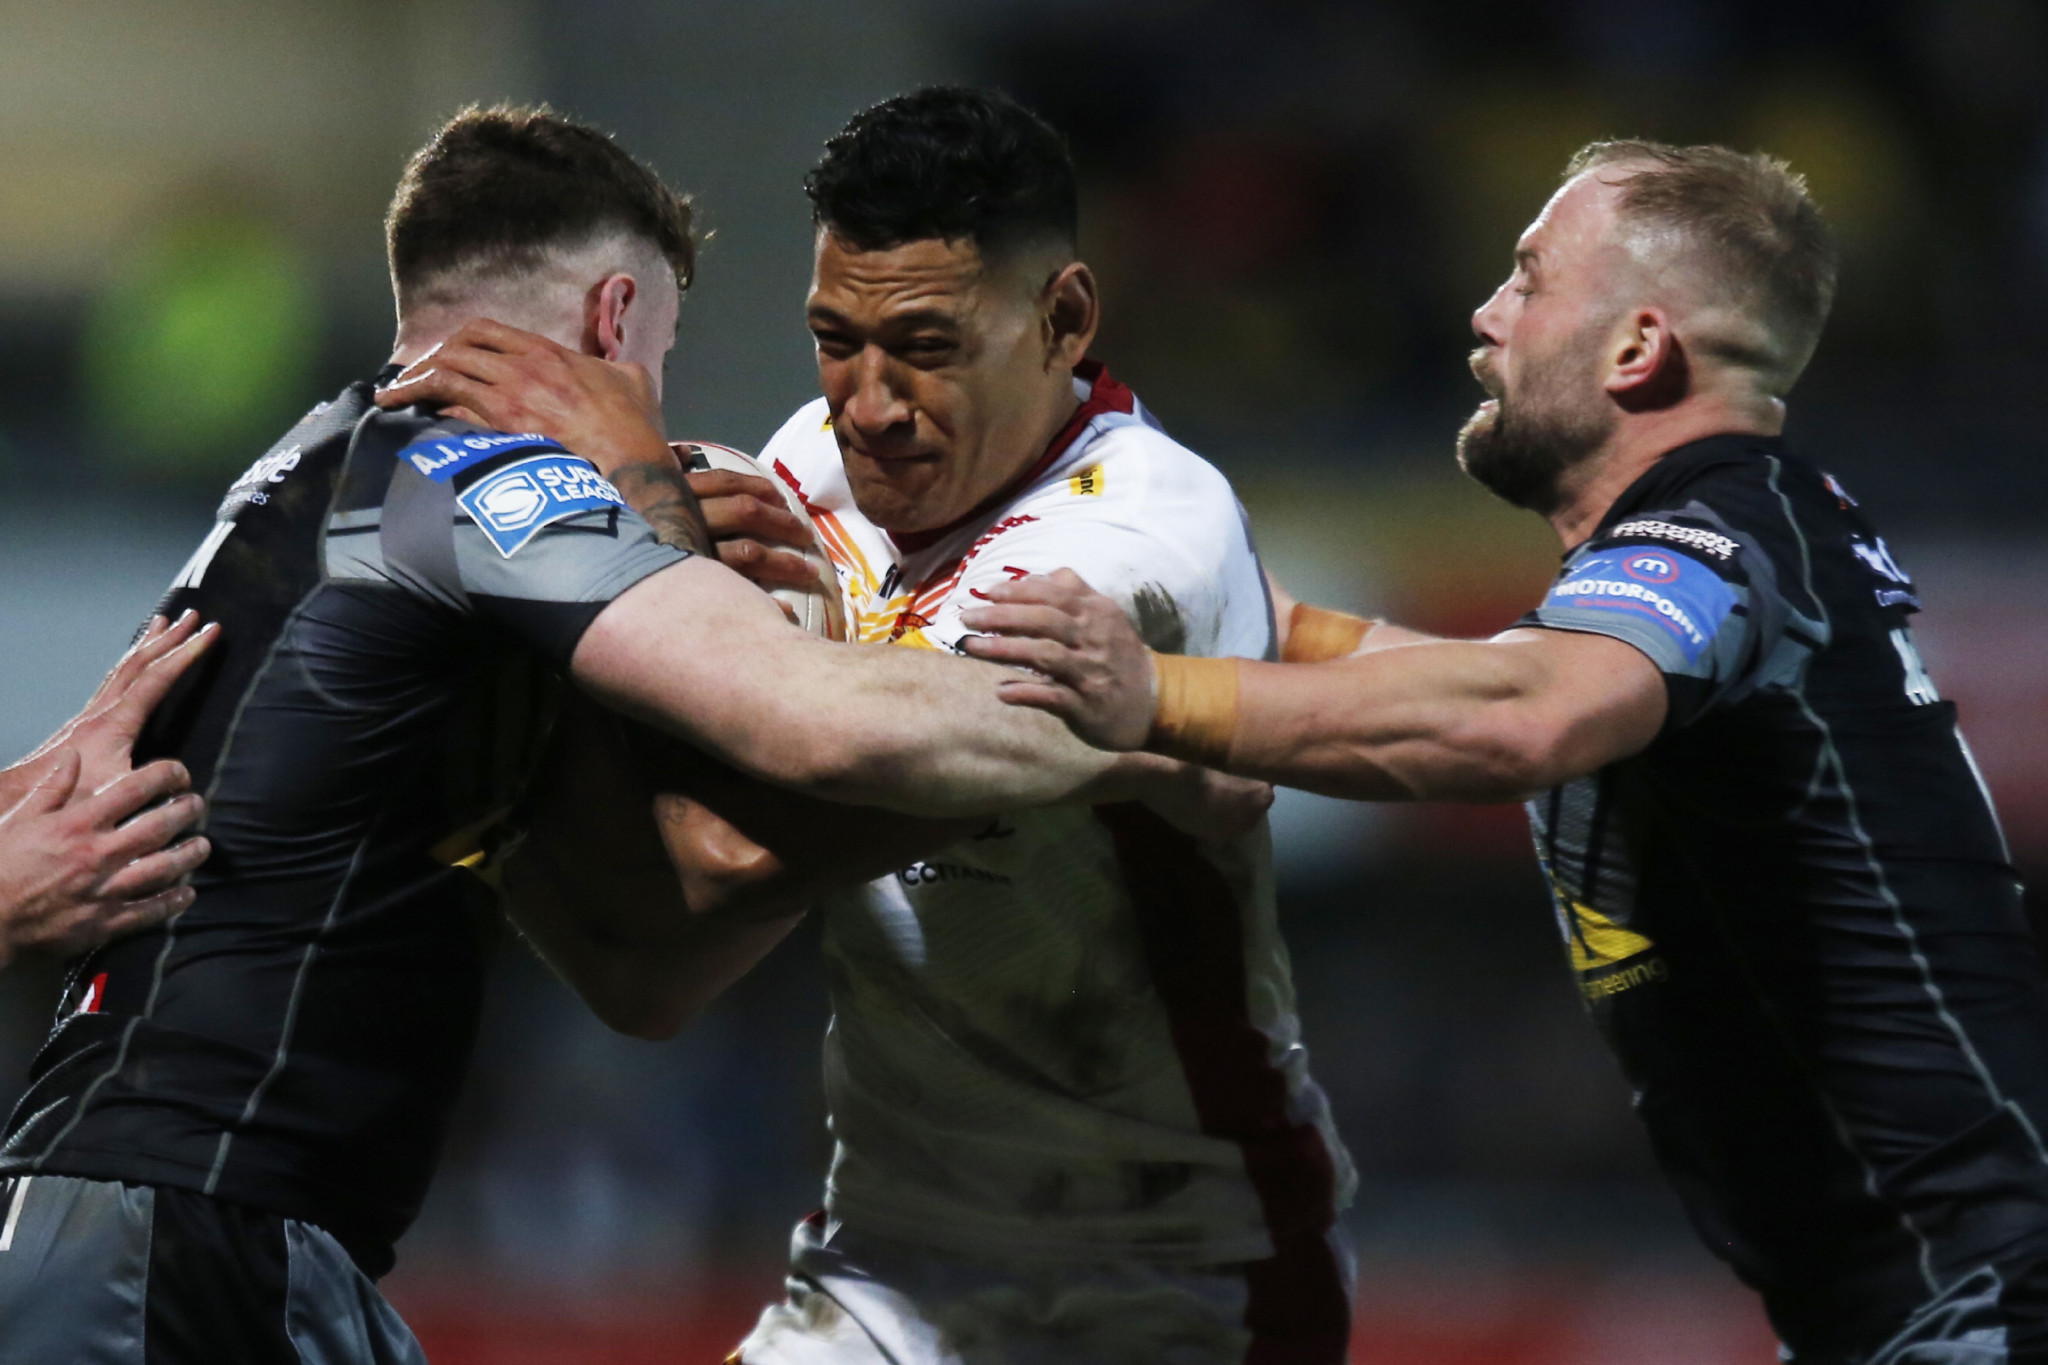 Controversy over rainbow flag as Folau returns to action